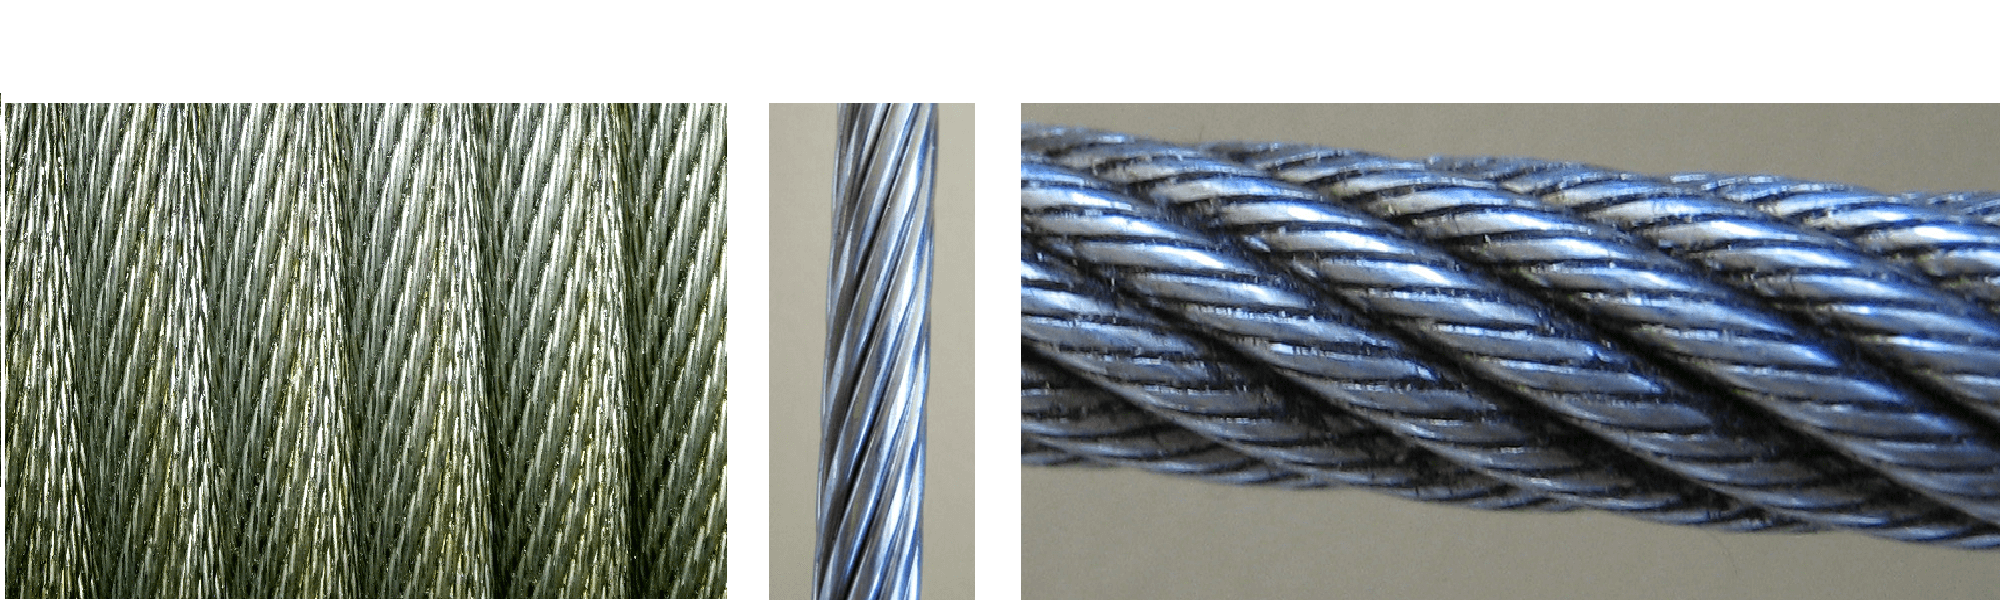 Compacted Wire Rope | Compacted Stainless Steel Rope